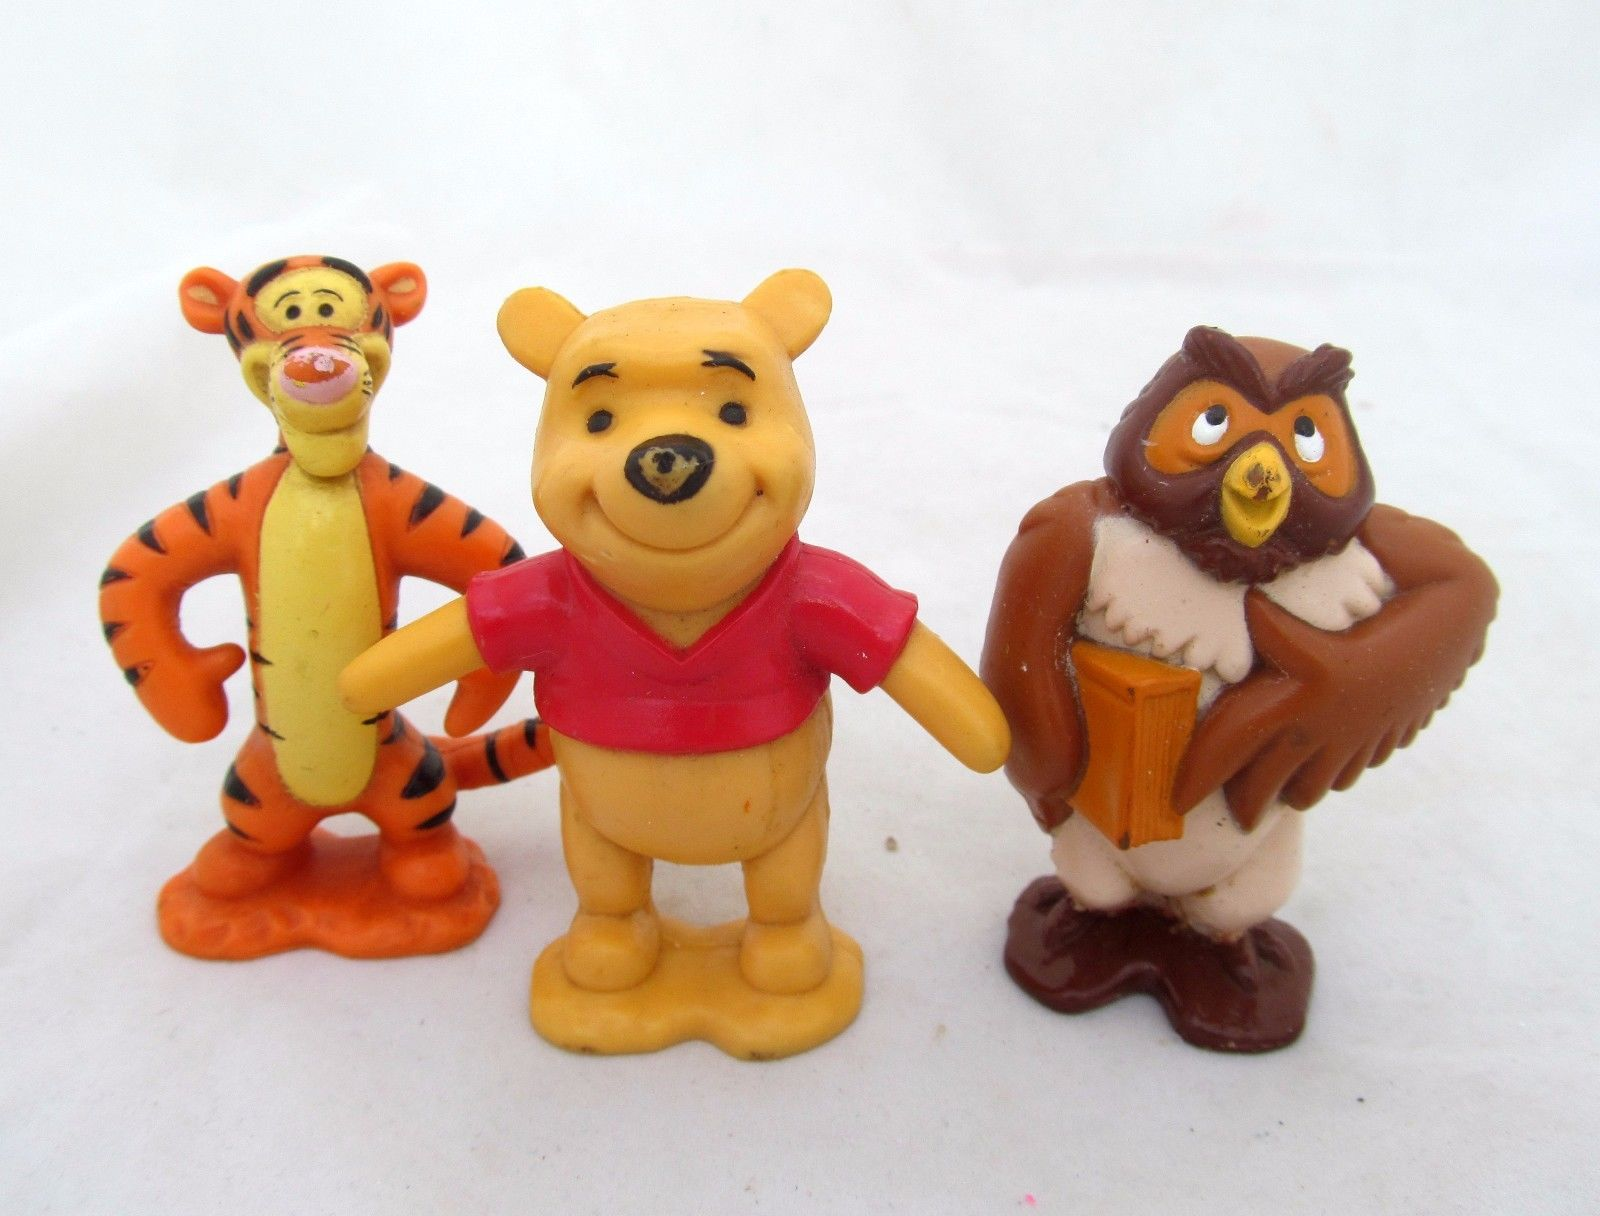 Disney Winnie The Pooh Figure Tigger Owl Figurine Play Set Of 3 Cake Topper Lot